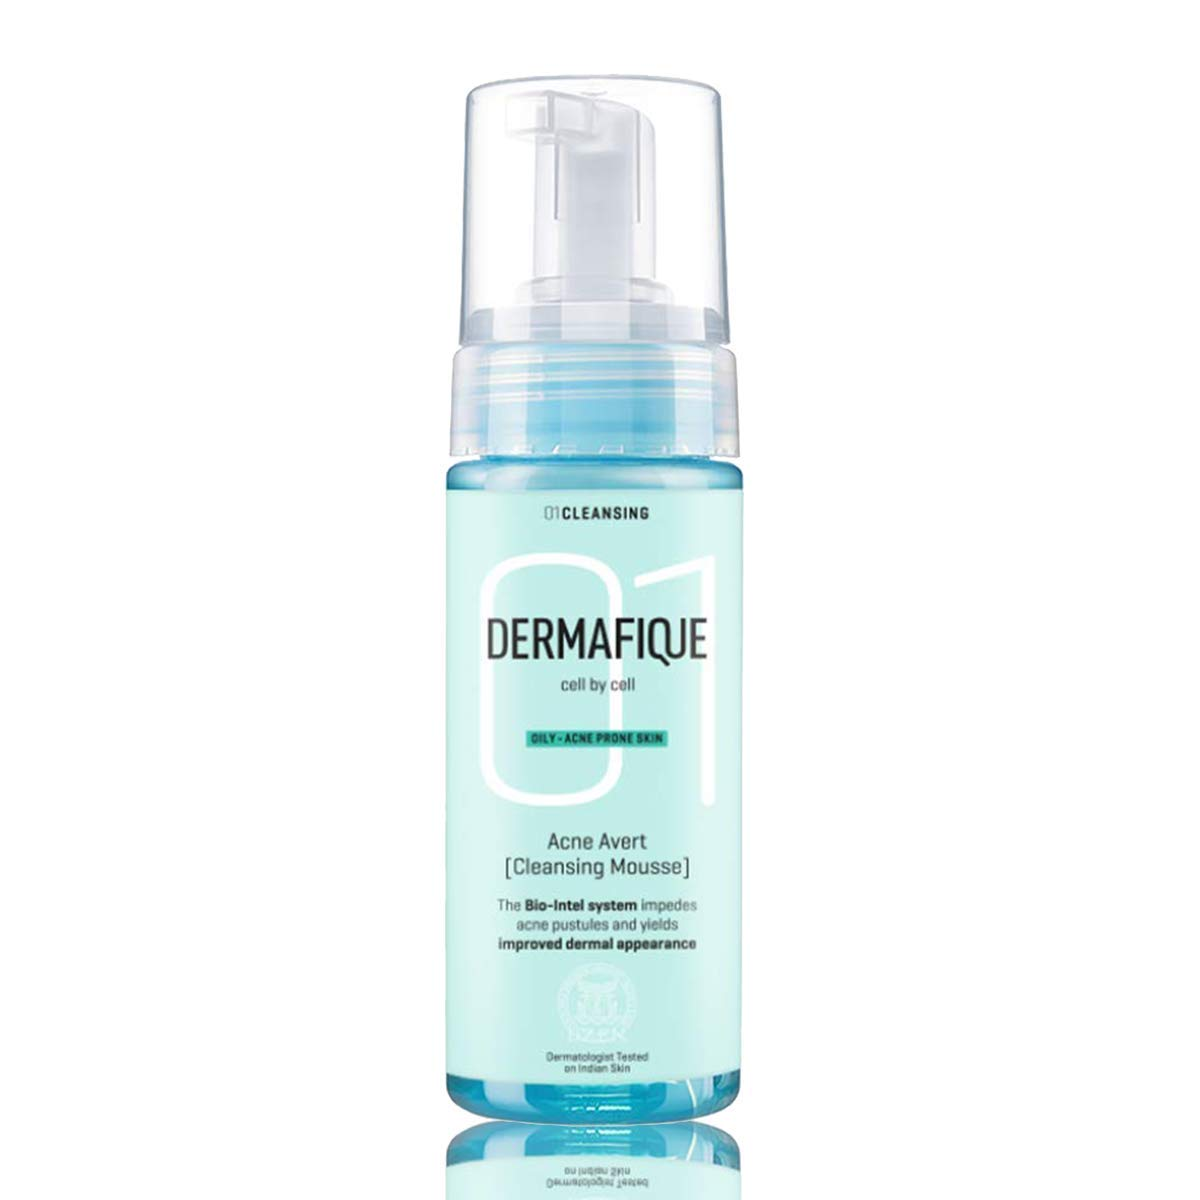 Dermafique Acne Avert Cleansing Mousse (Price – Rs. 404)